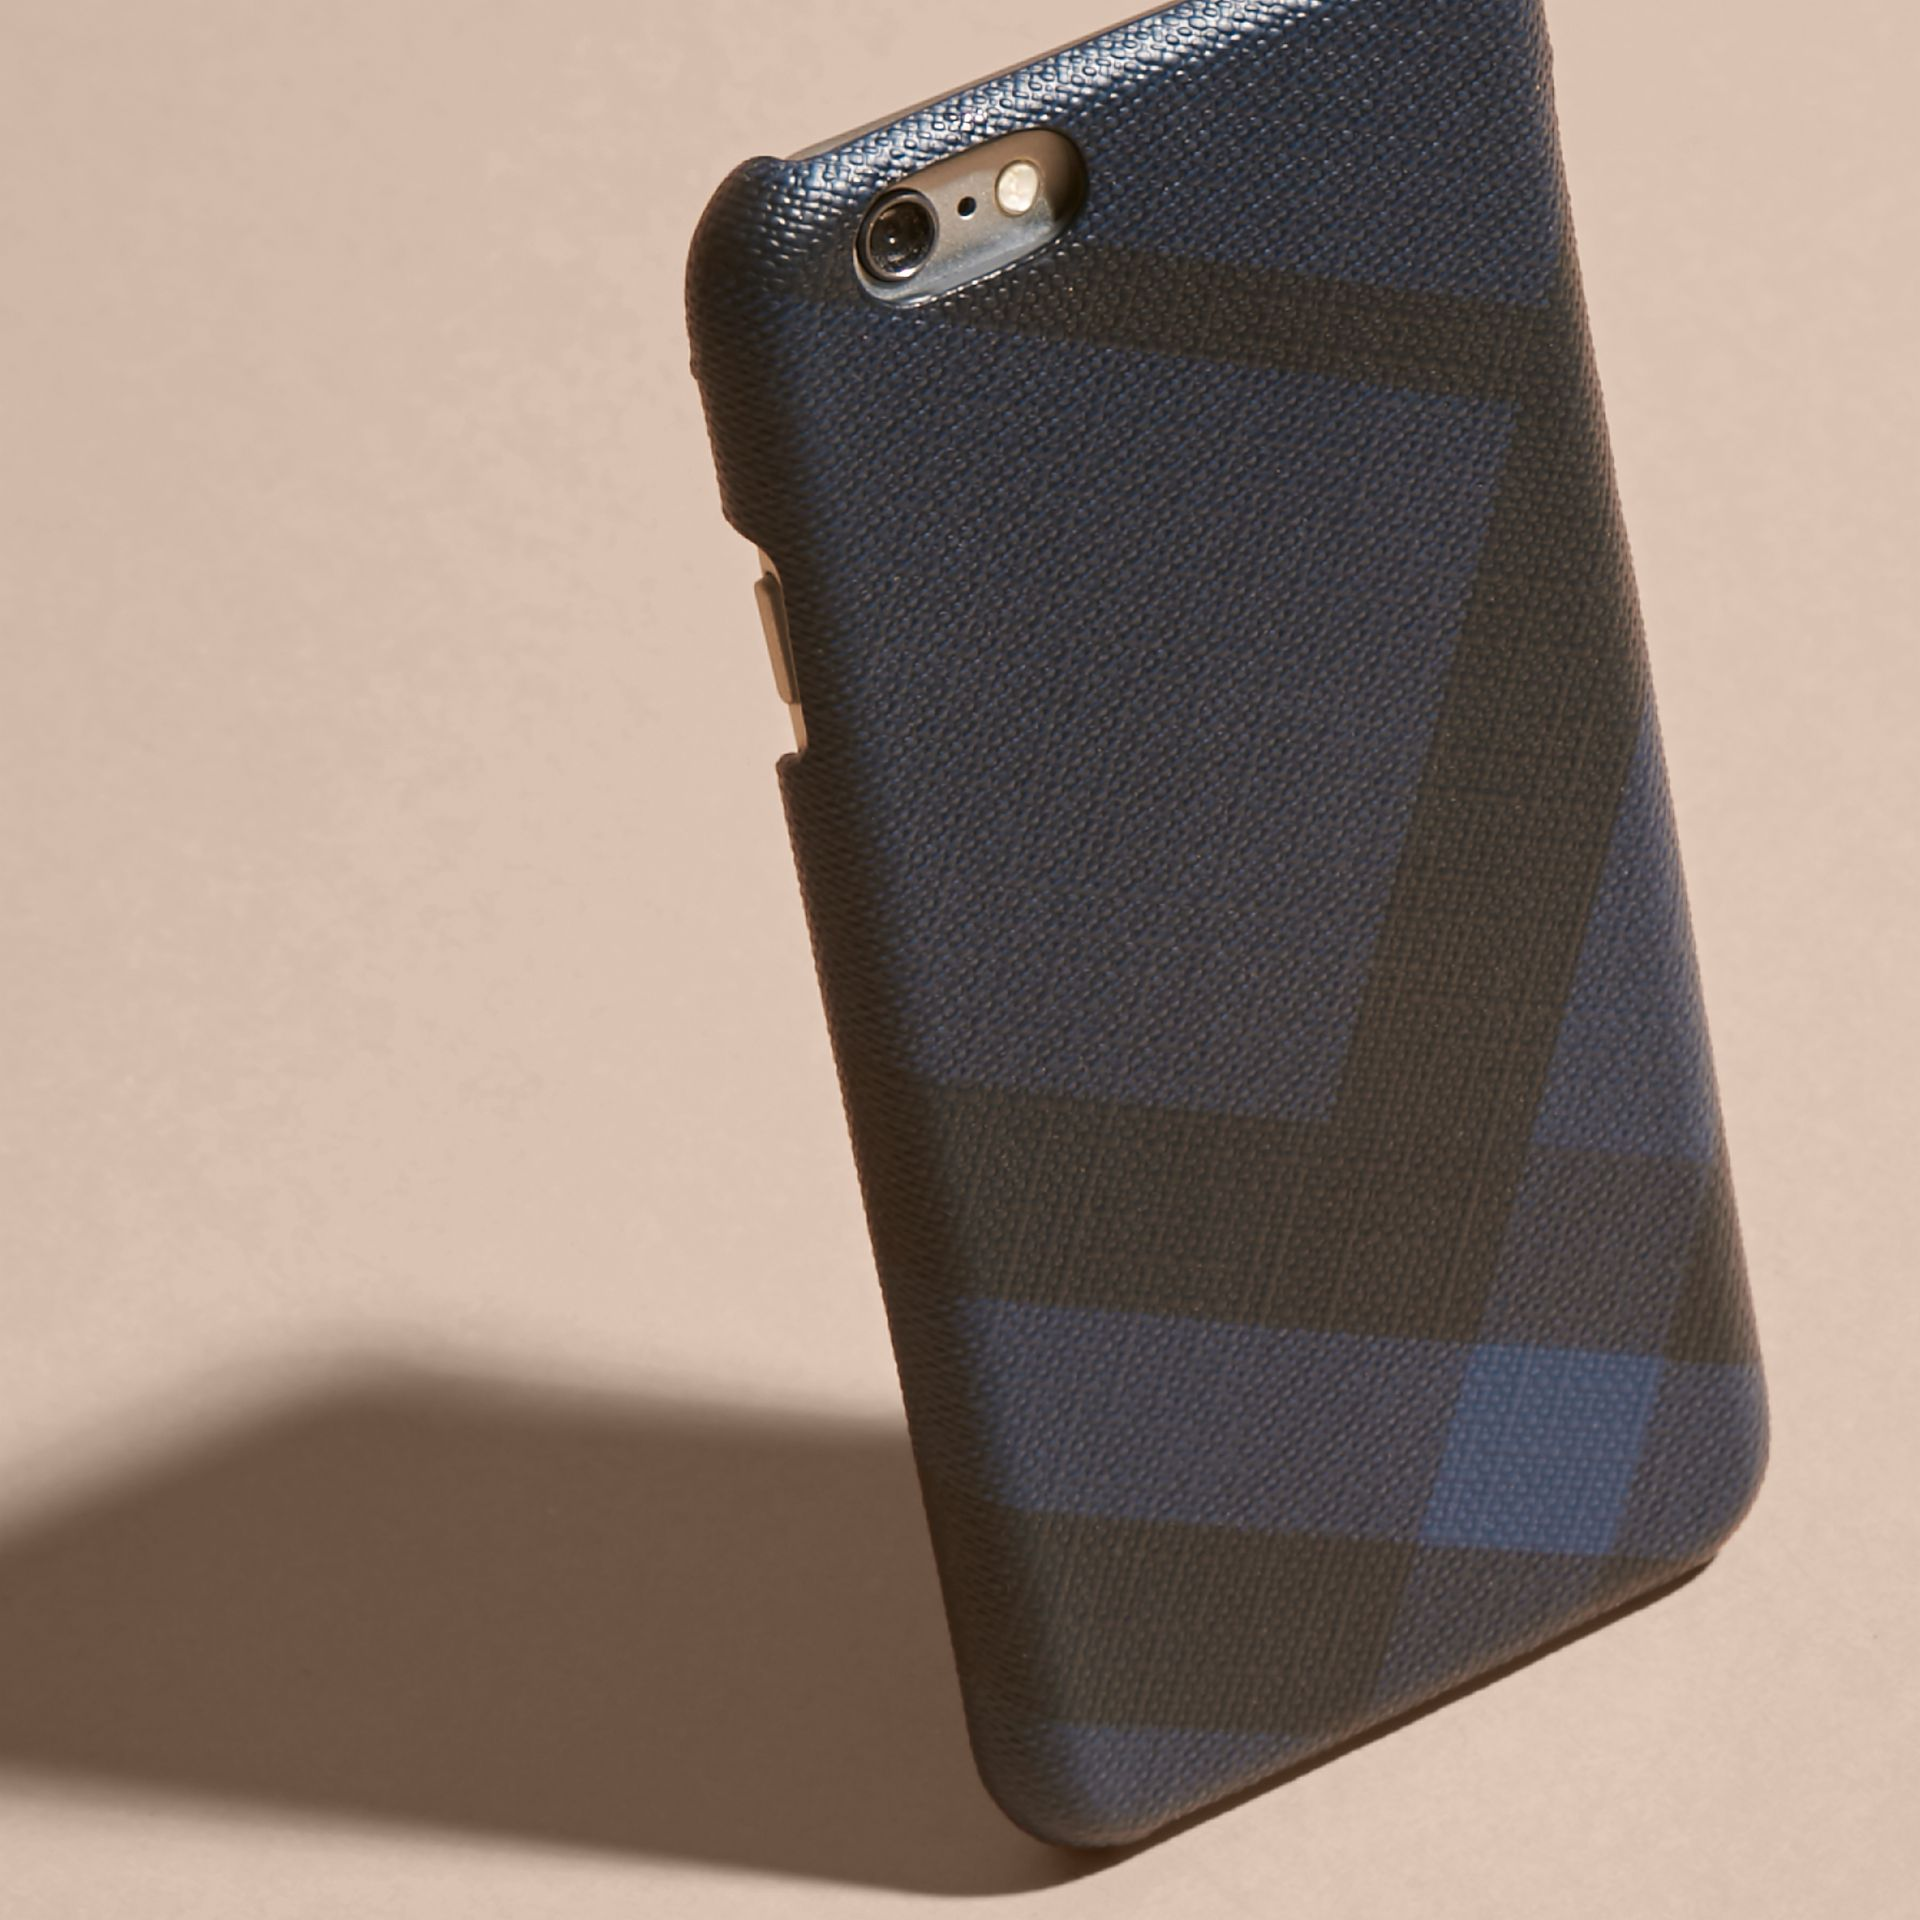 Custodia per iPhone 7 con motivo London check (Navy/nero) | Burberry - immagine della galleria 4